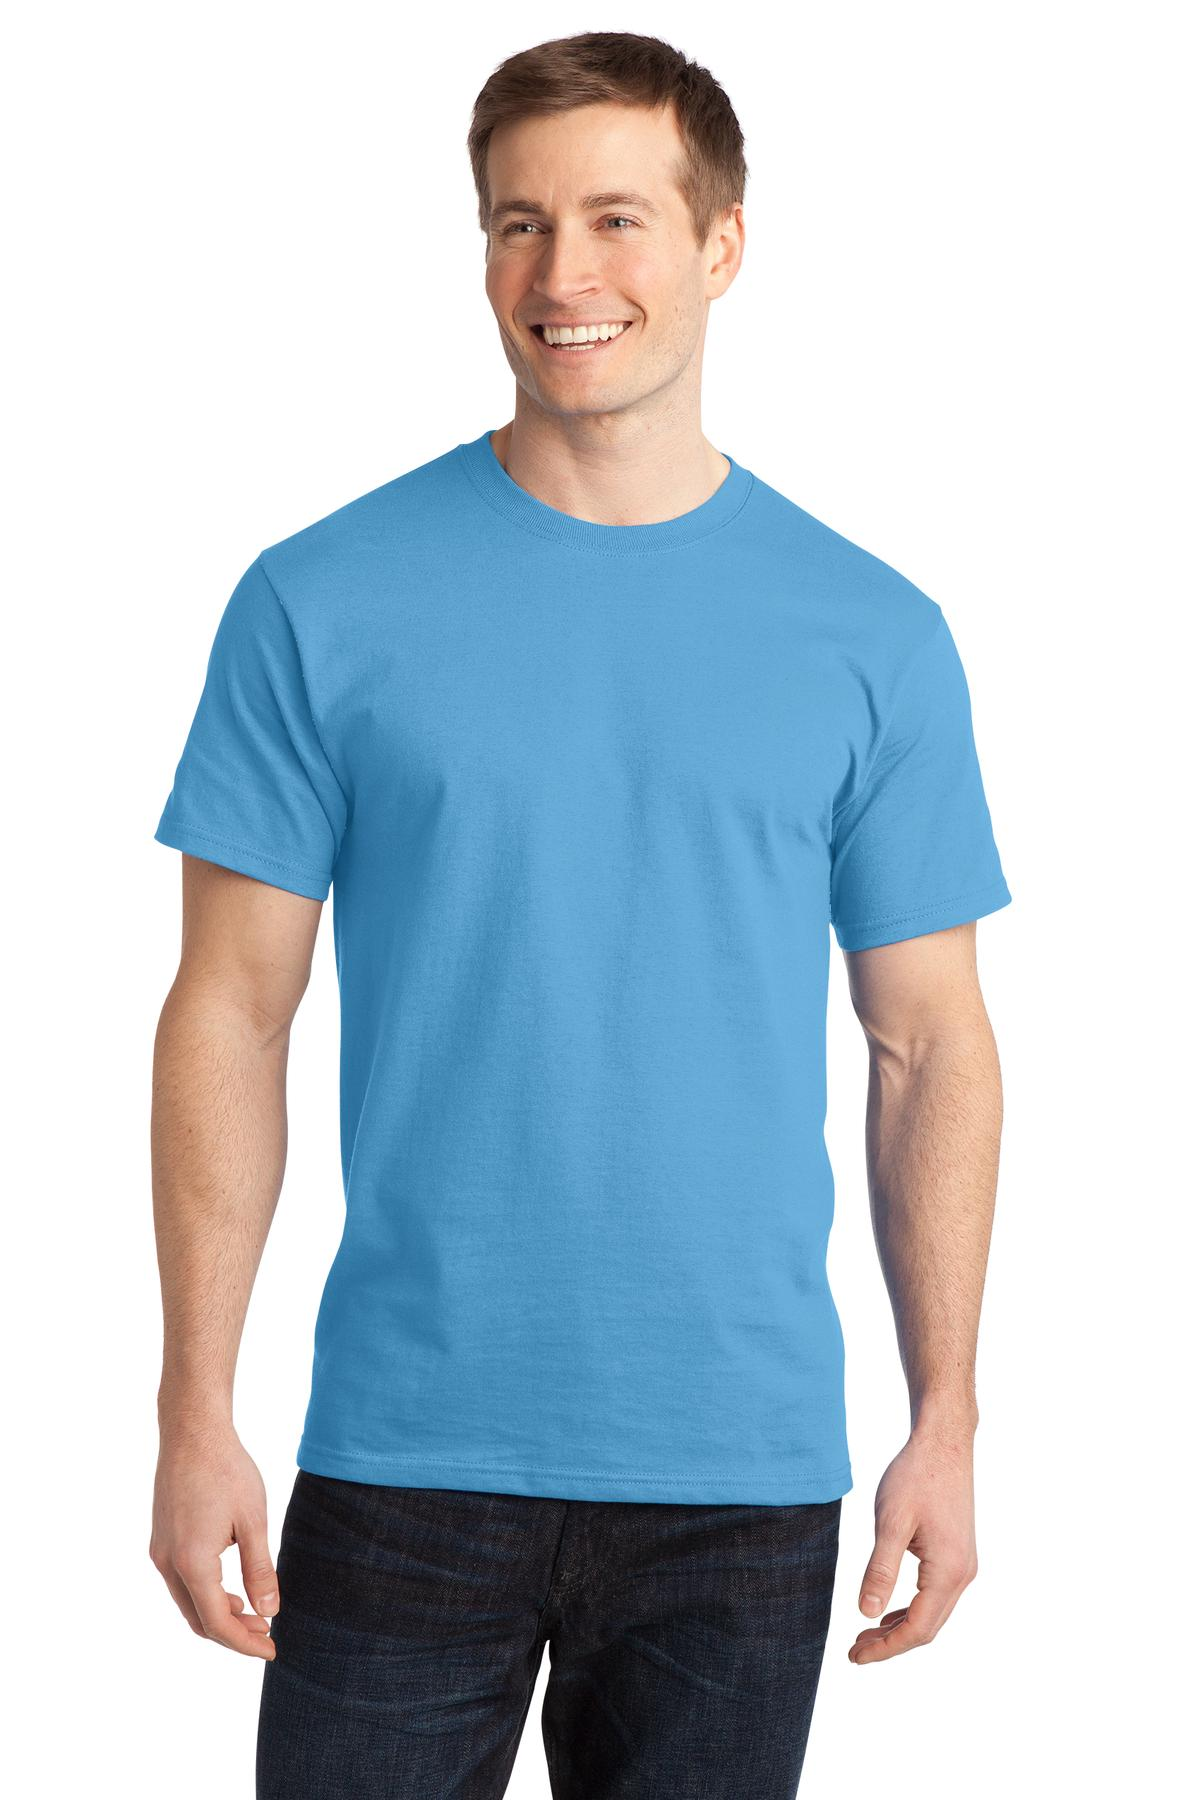 Port & Company - Essential Ring Spun Cotton T-Shirt. PC150